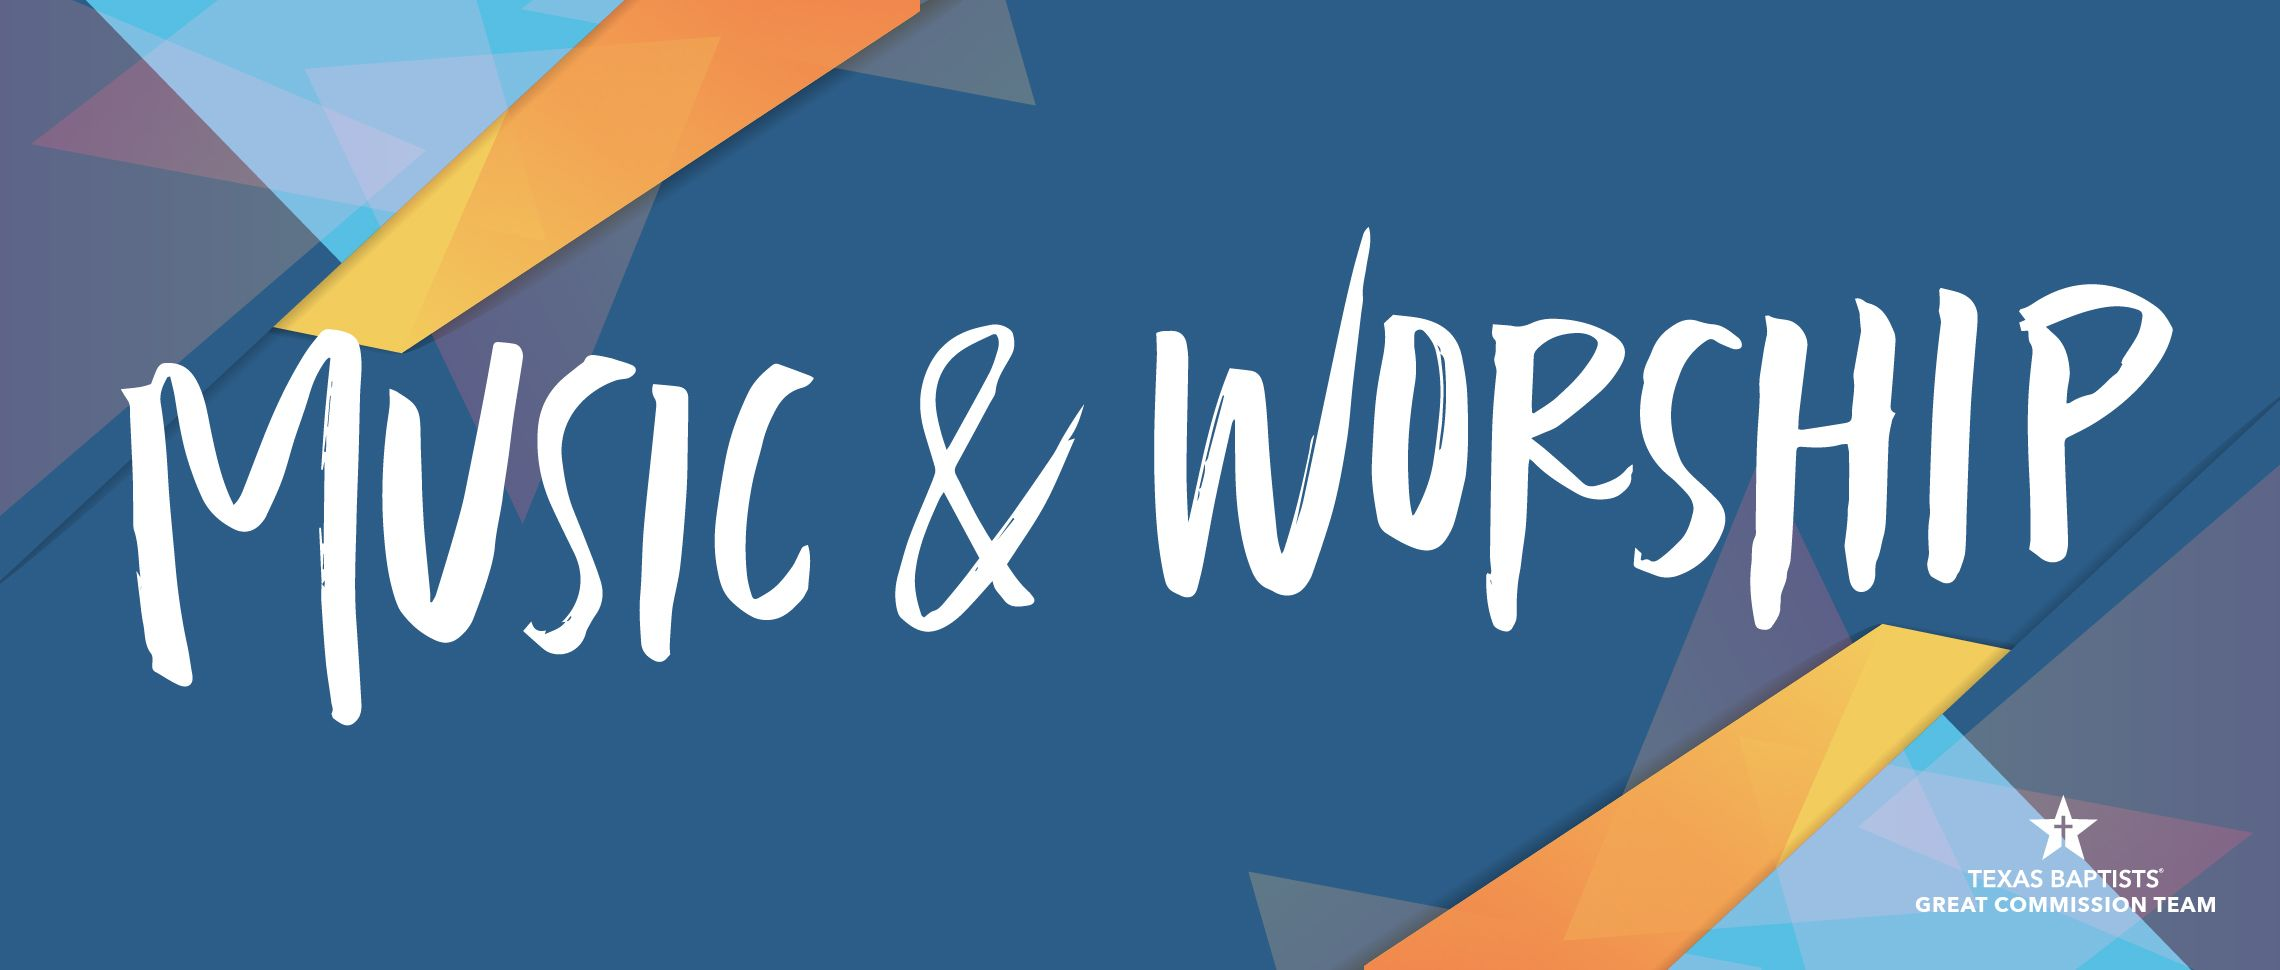 worship ministry team events texas church banner baptists churches ministries fellowship multiple opportunities singing partners web through training discipleship texasbaptists